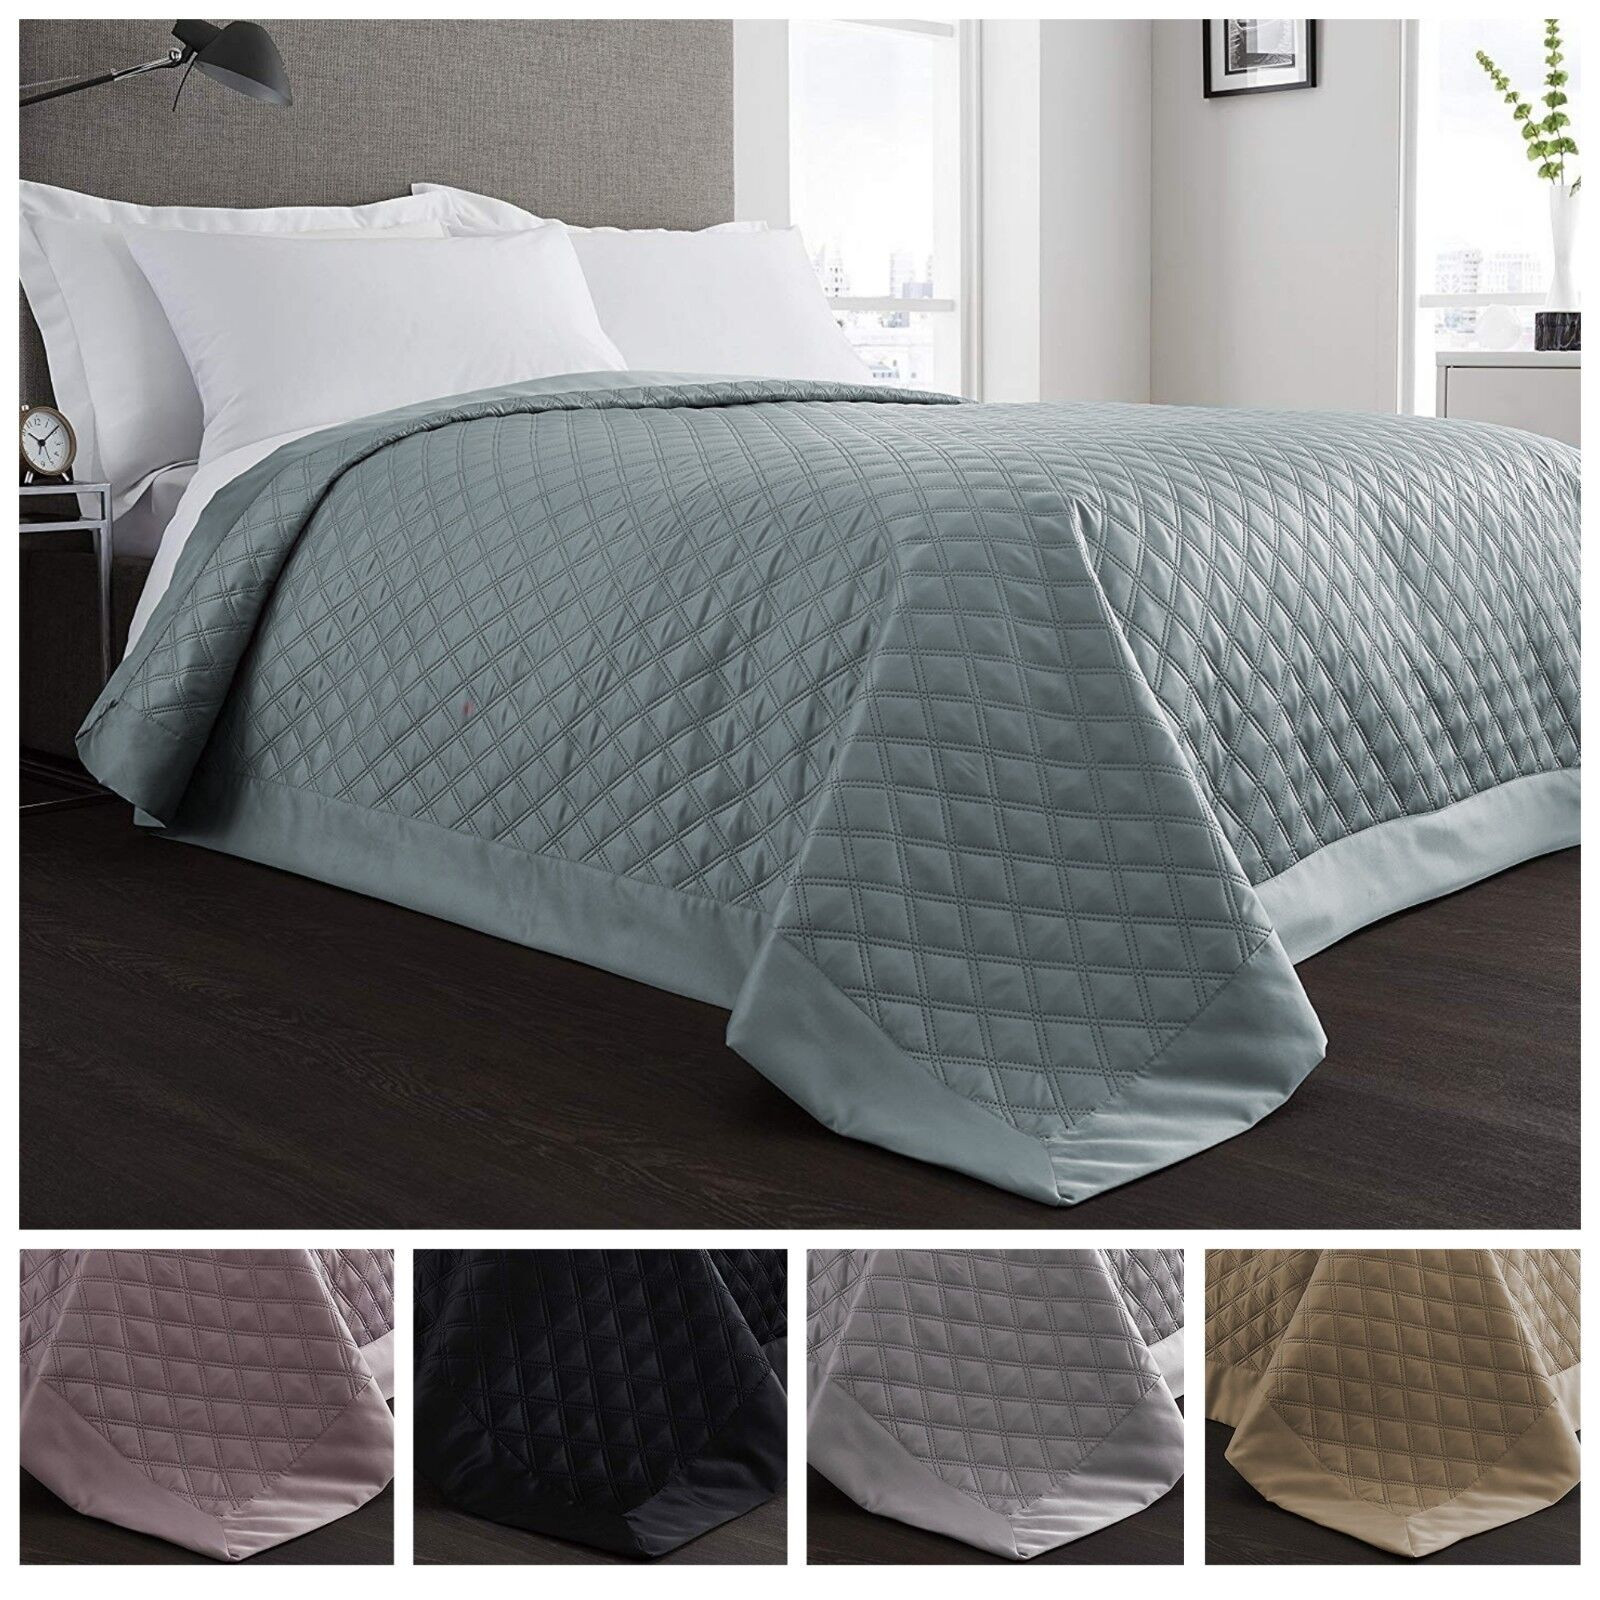 Luxury Manhattan Diamond Stitch Quilted Matt Satin Hotel Bedding Throw Bedspread